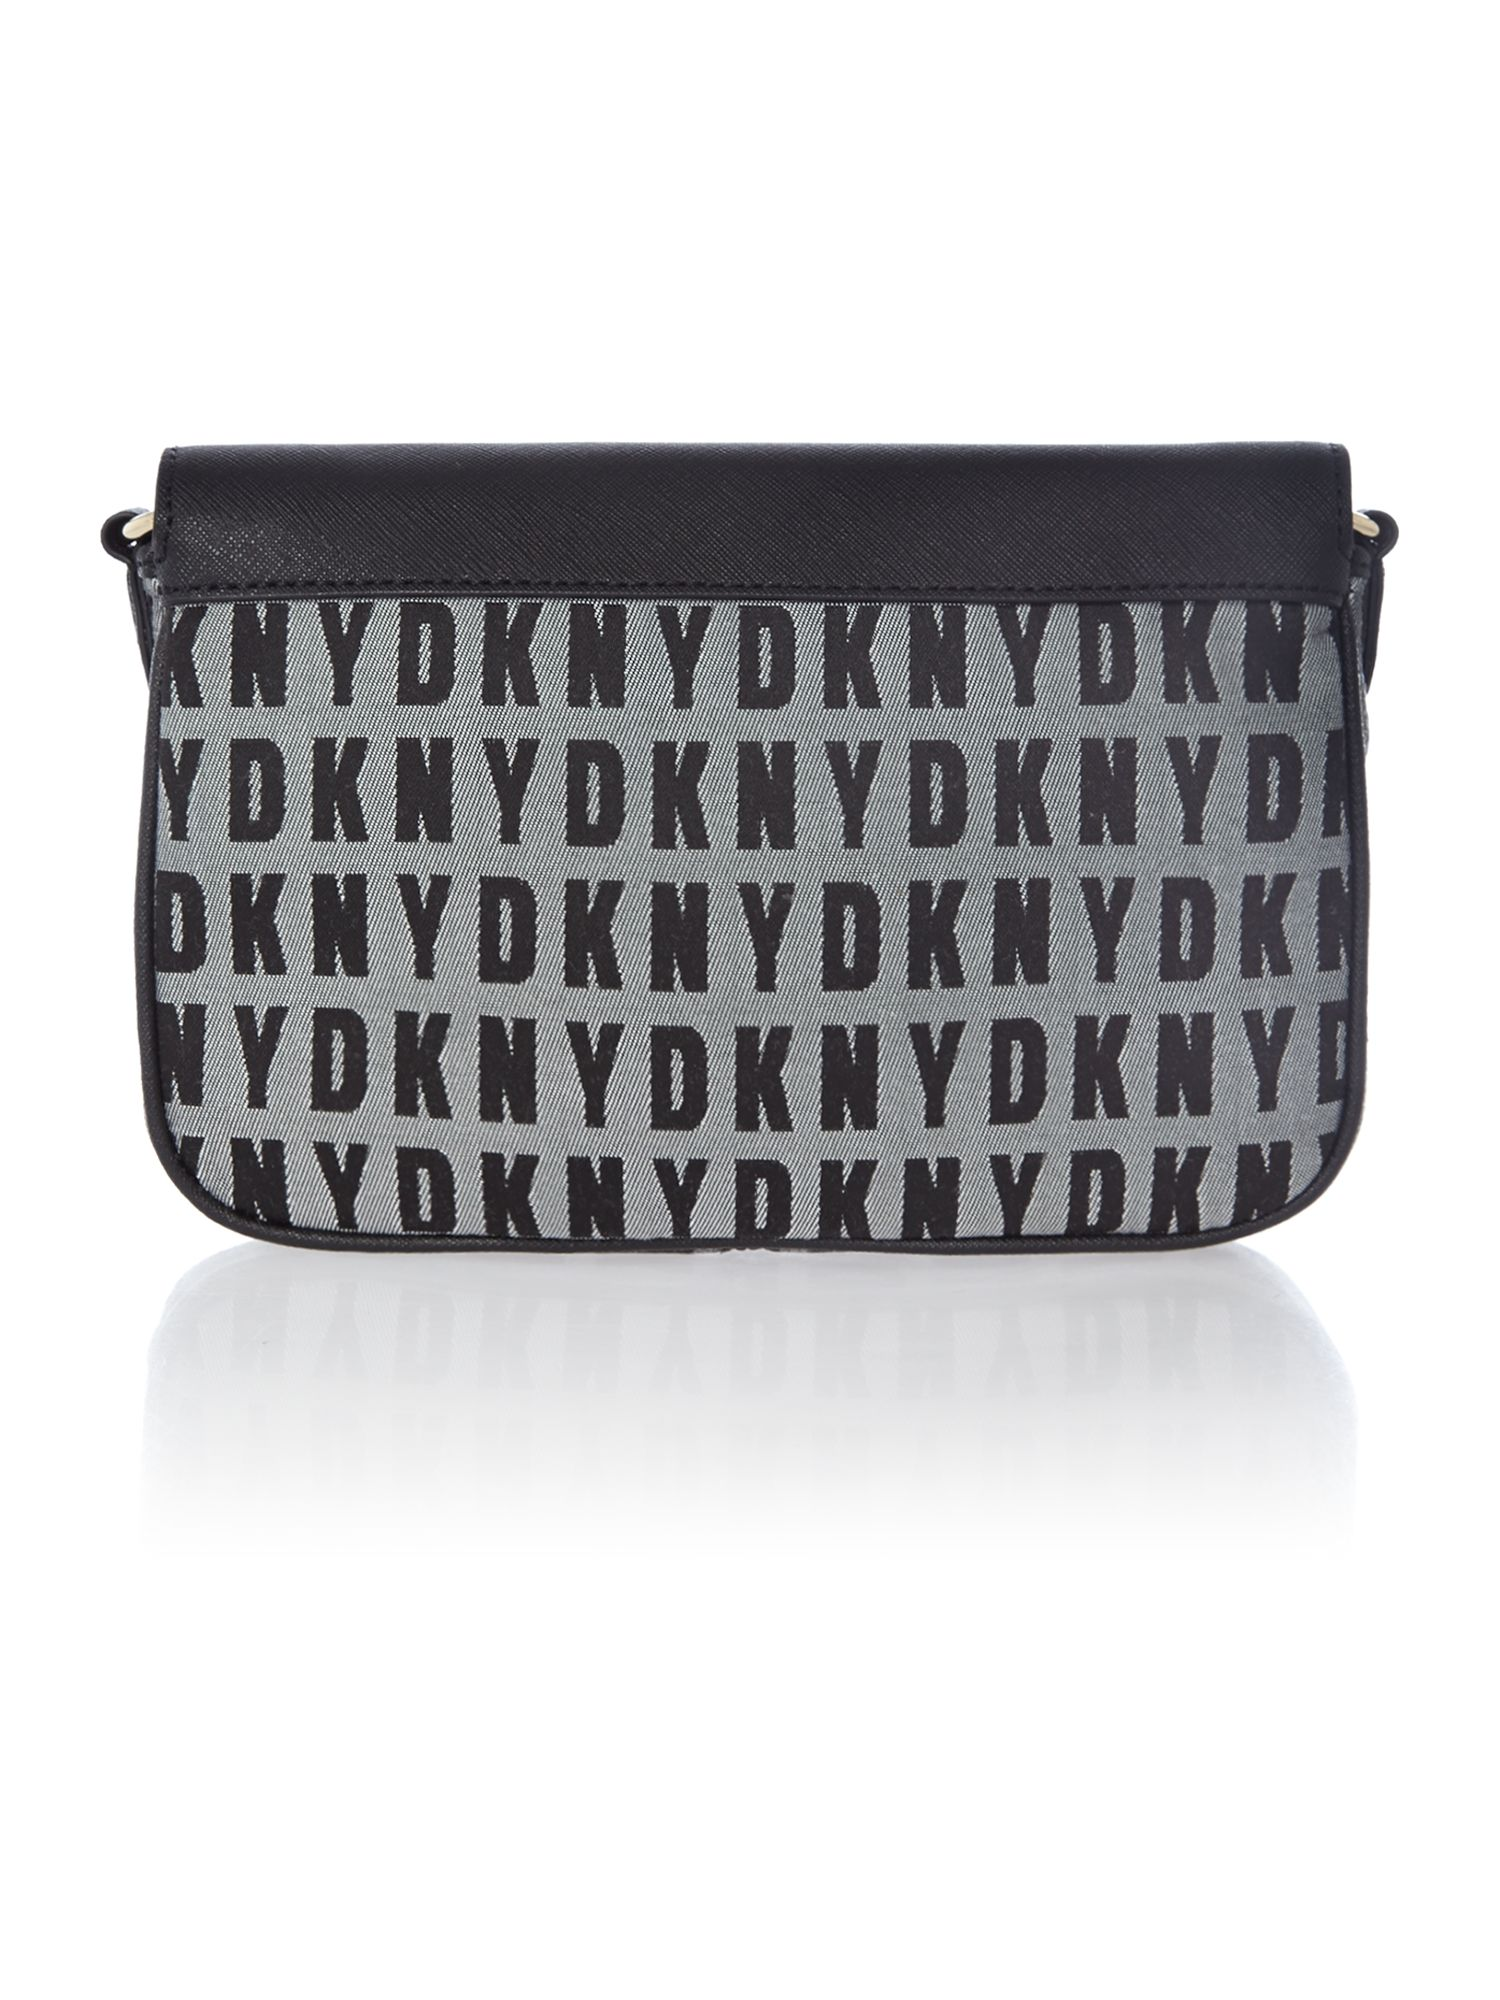 Black small flap over chain cross body bag